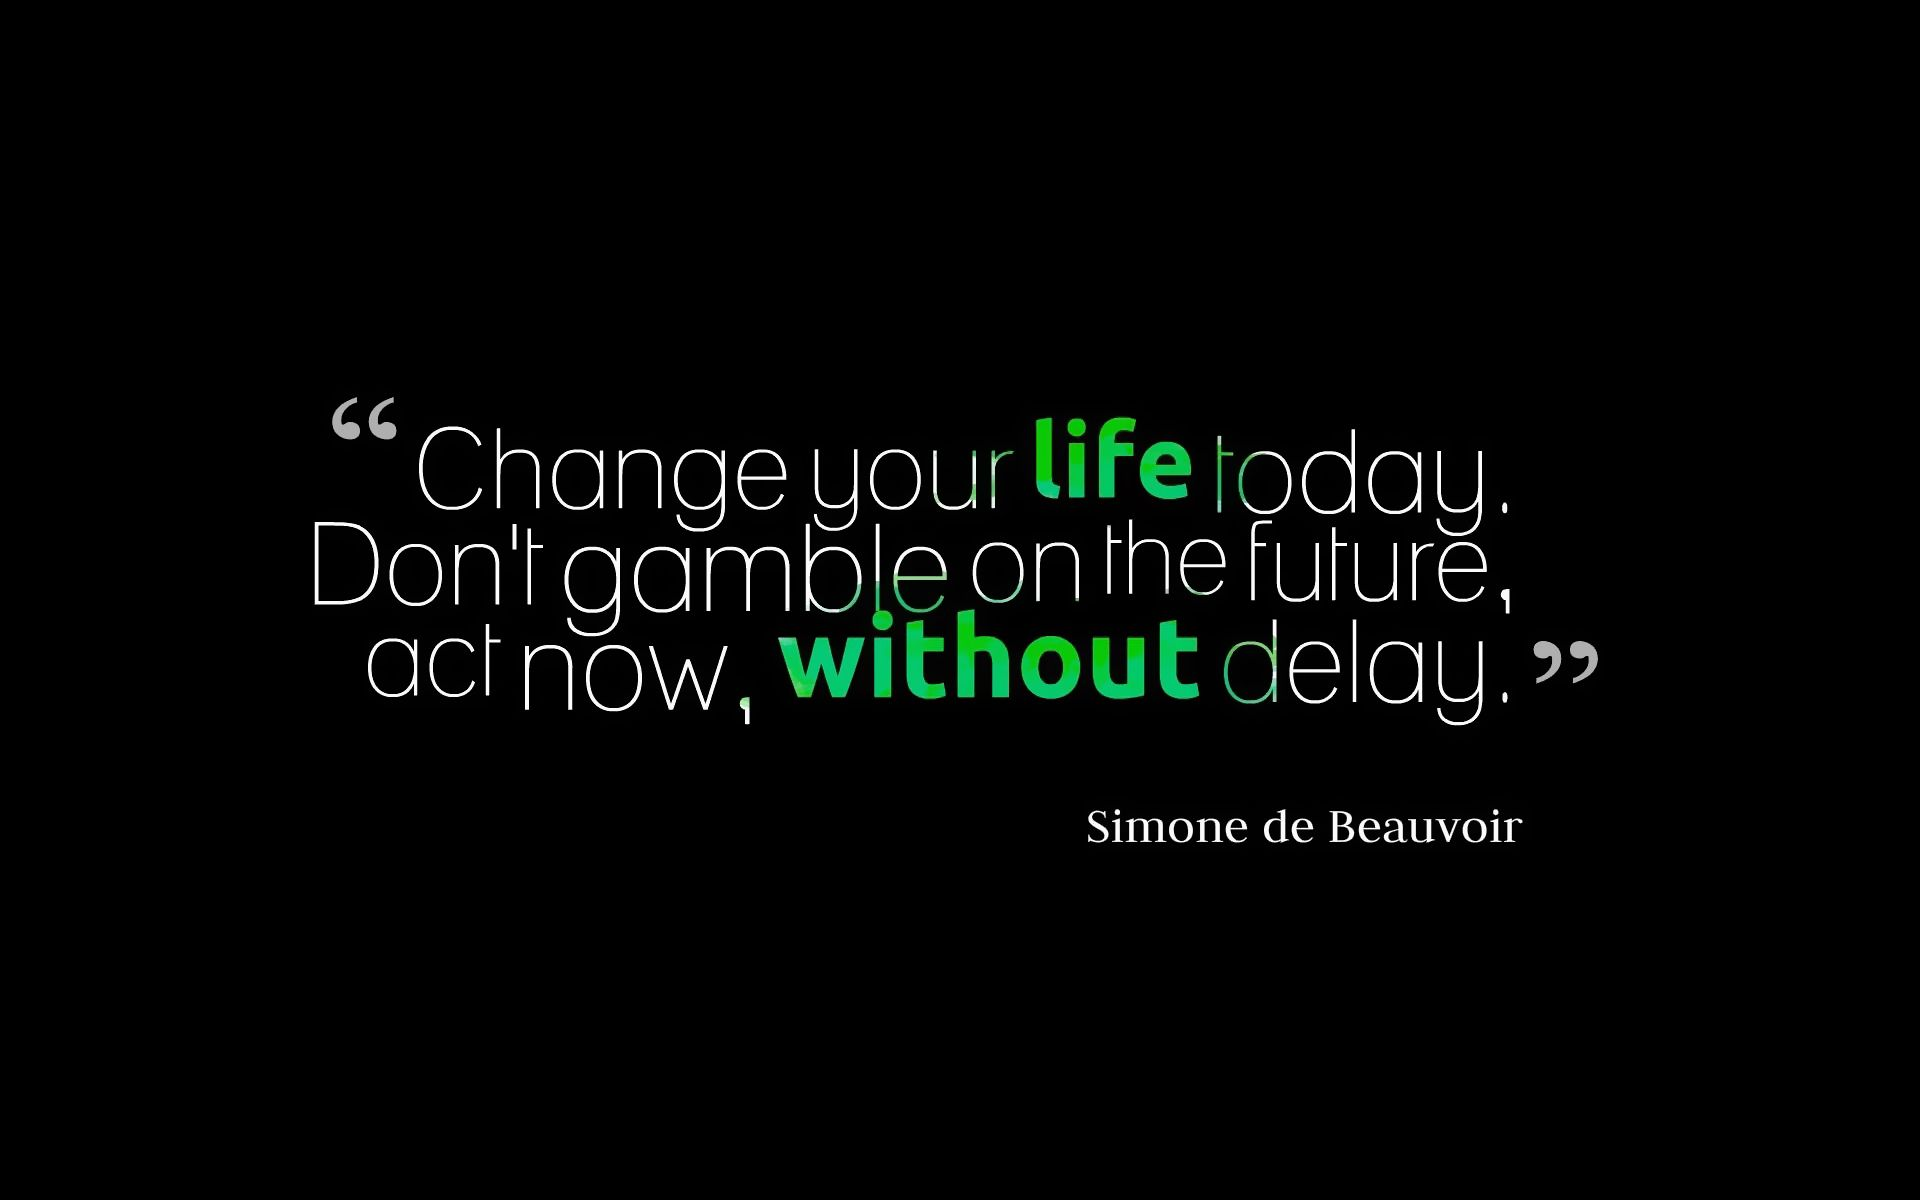 Http Victoryhealth Spreadshirt Com Dream Victory Health Boss Lifestyle Motivation Inspiration He Today Quotes Free Life Quotes Life Quotes Wallpaper